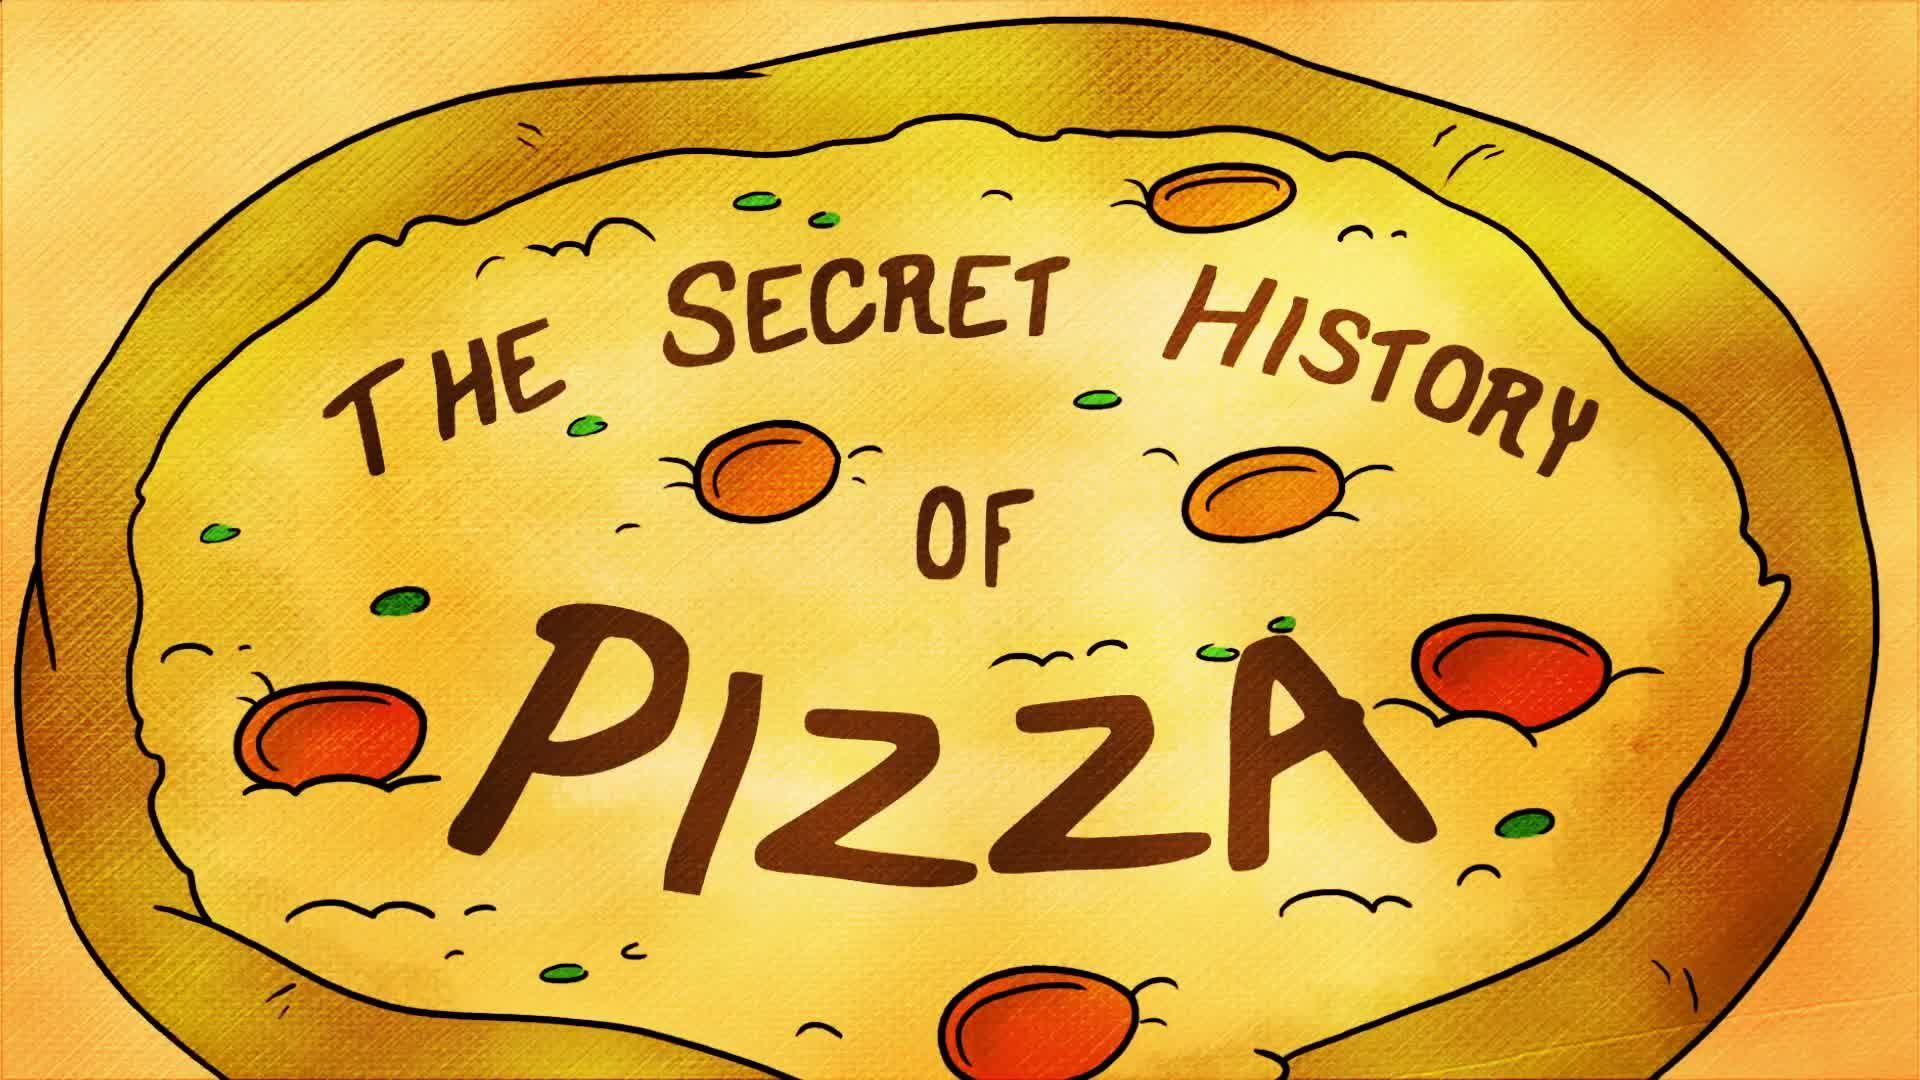 The Secret History of Pizza